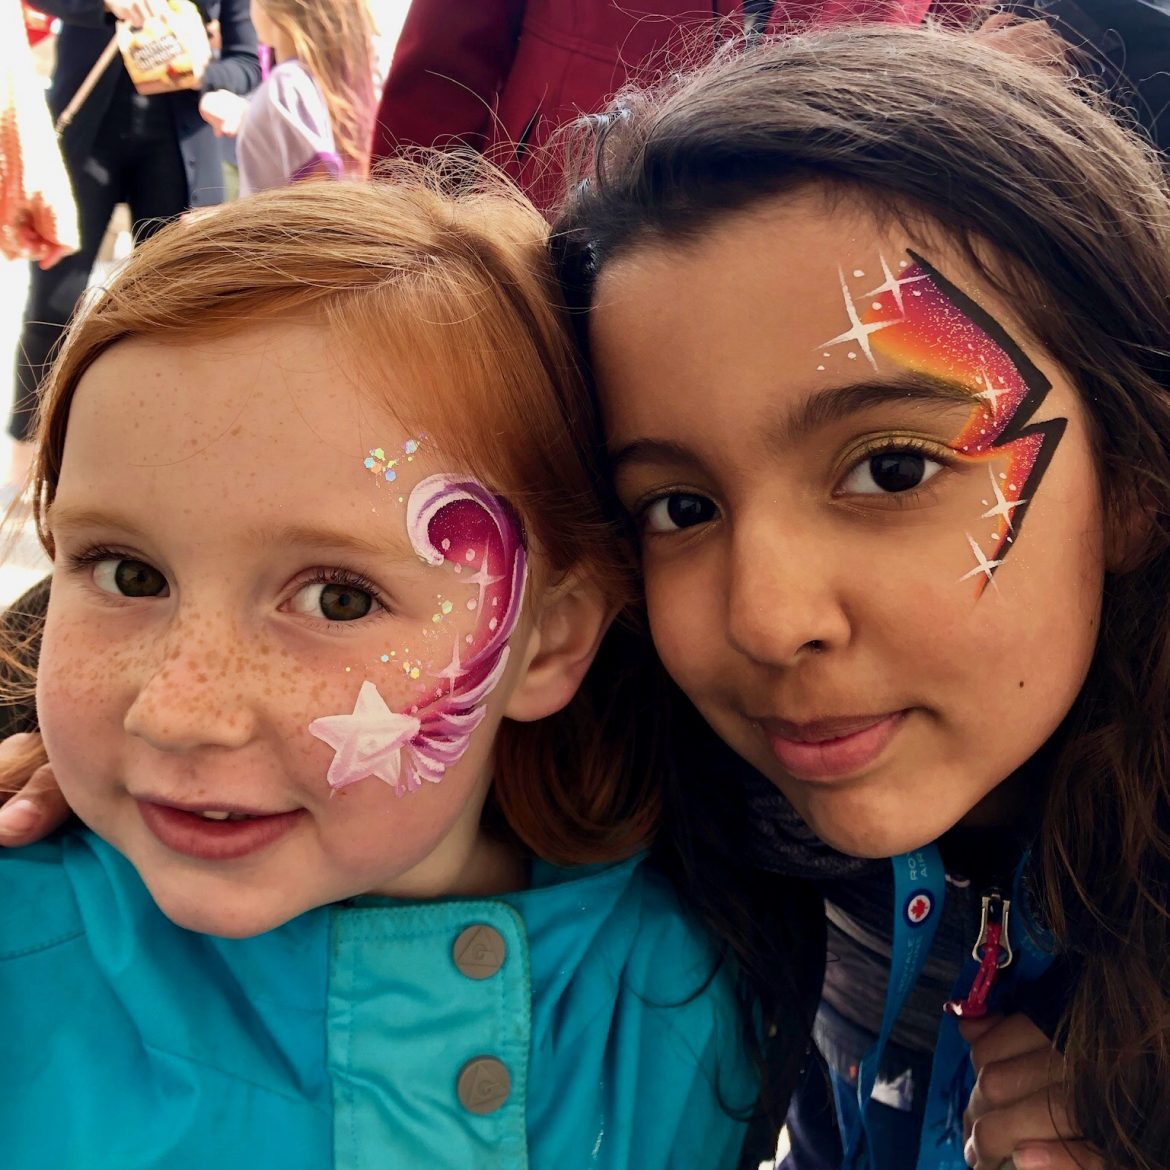 Pretty star and lightening bold on children's faces